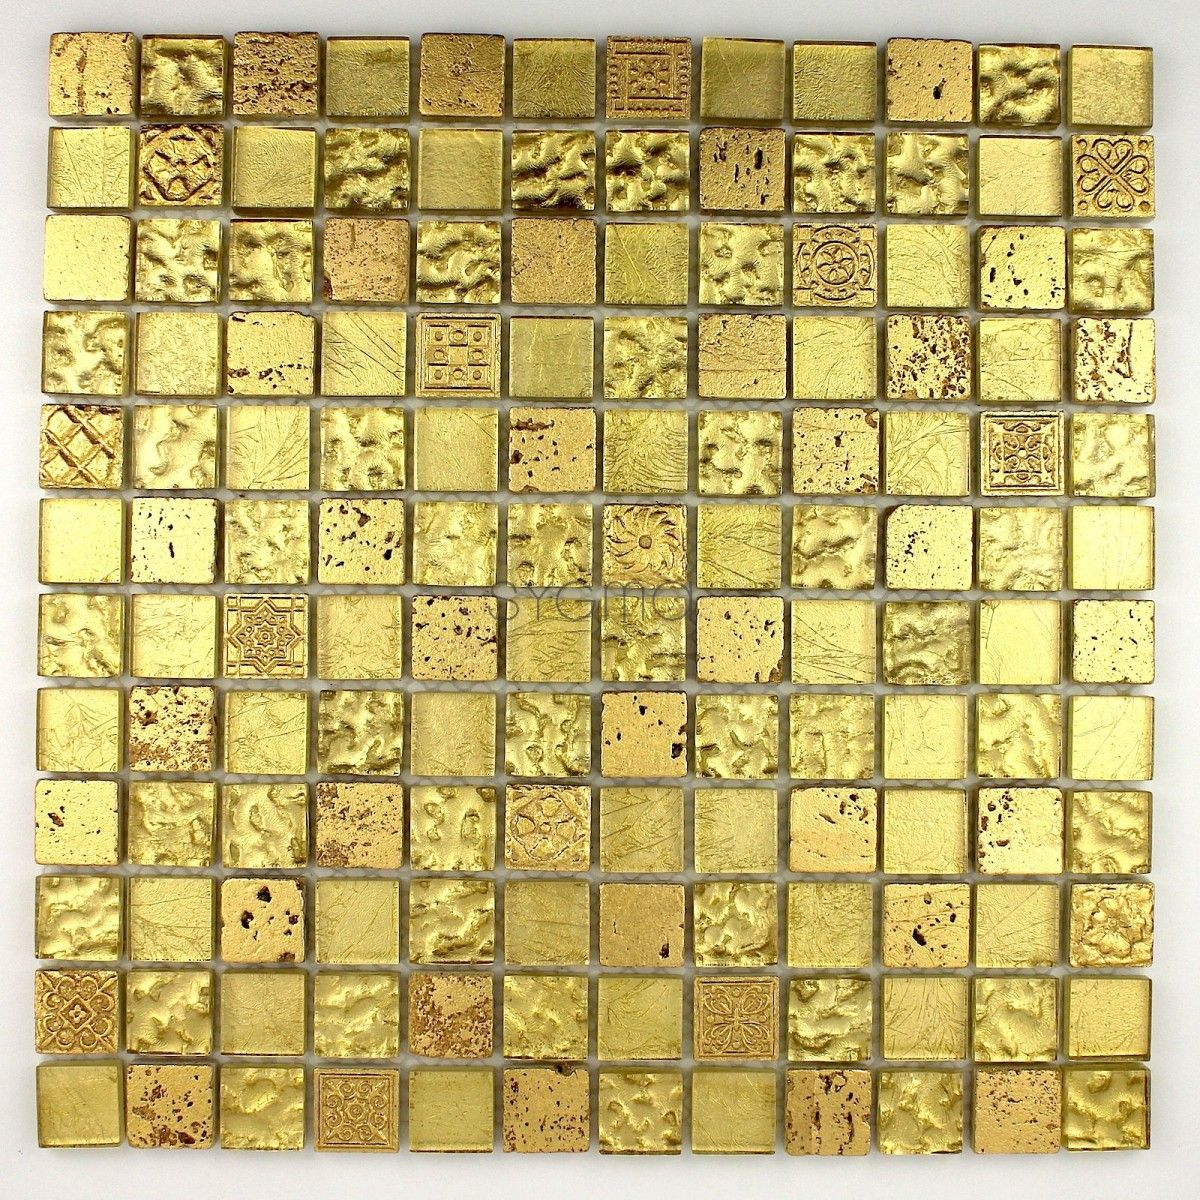 mosaic glass tile and stone mvp-met-gol - Sygma Group | Gold ...